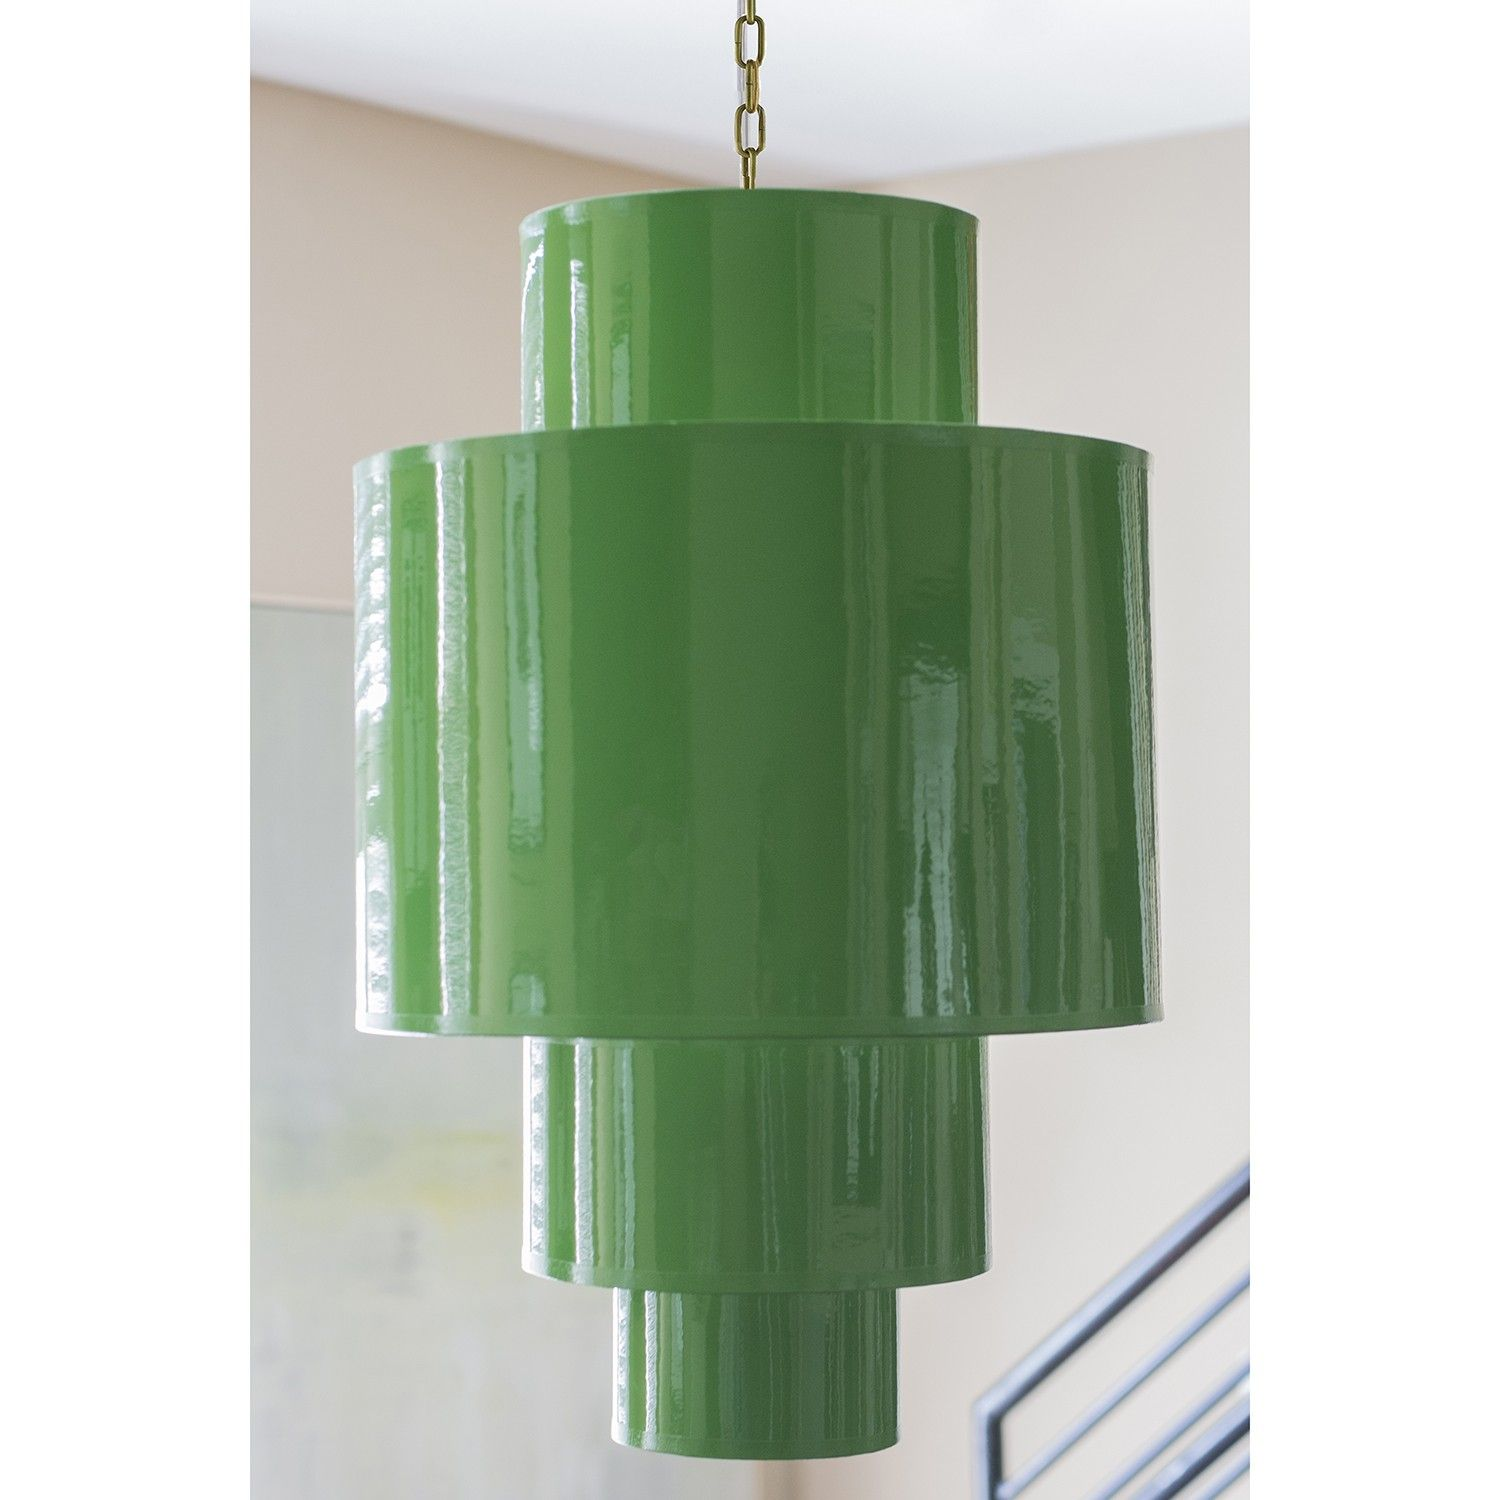 Couture 4 Tier Pendant - Kelly Green | Lighting | Pinterest